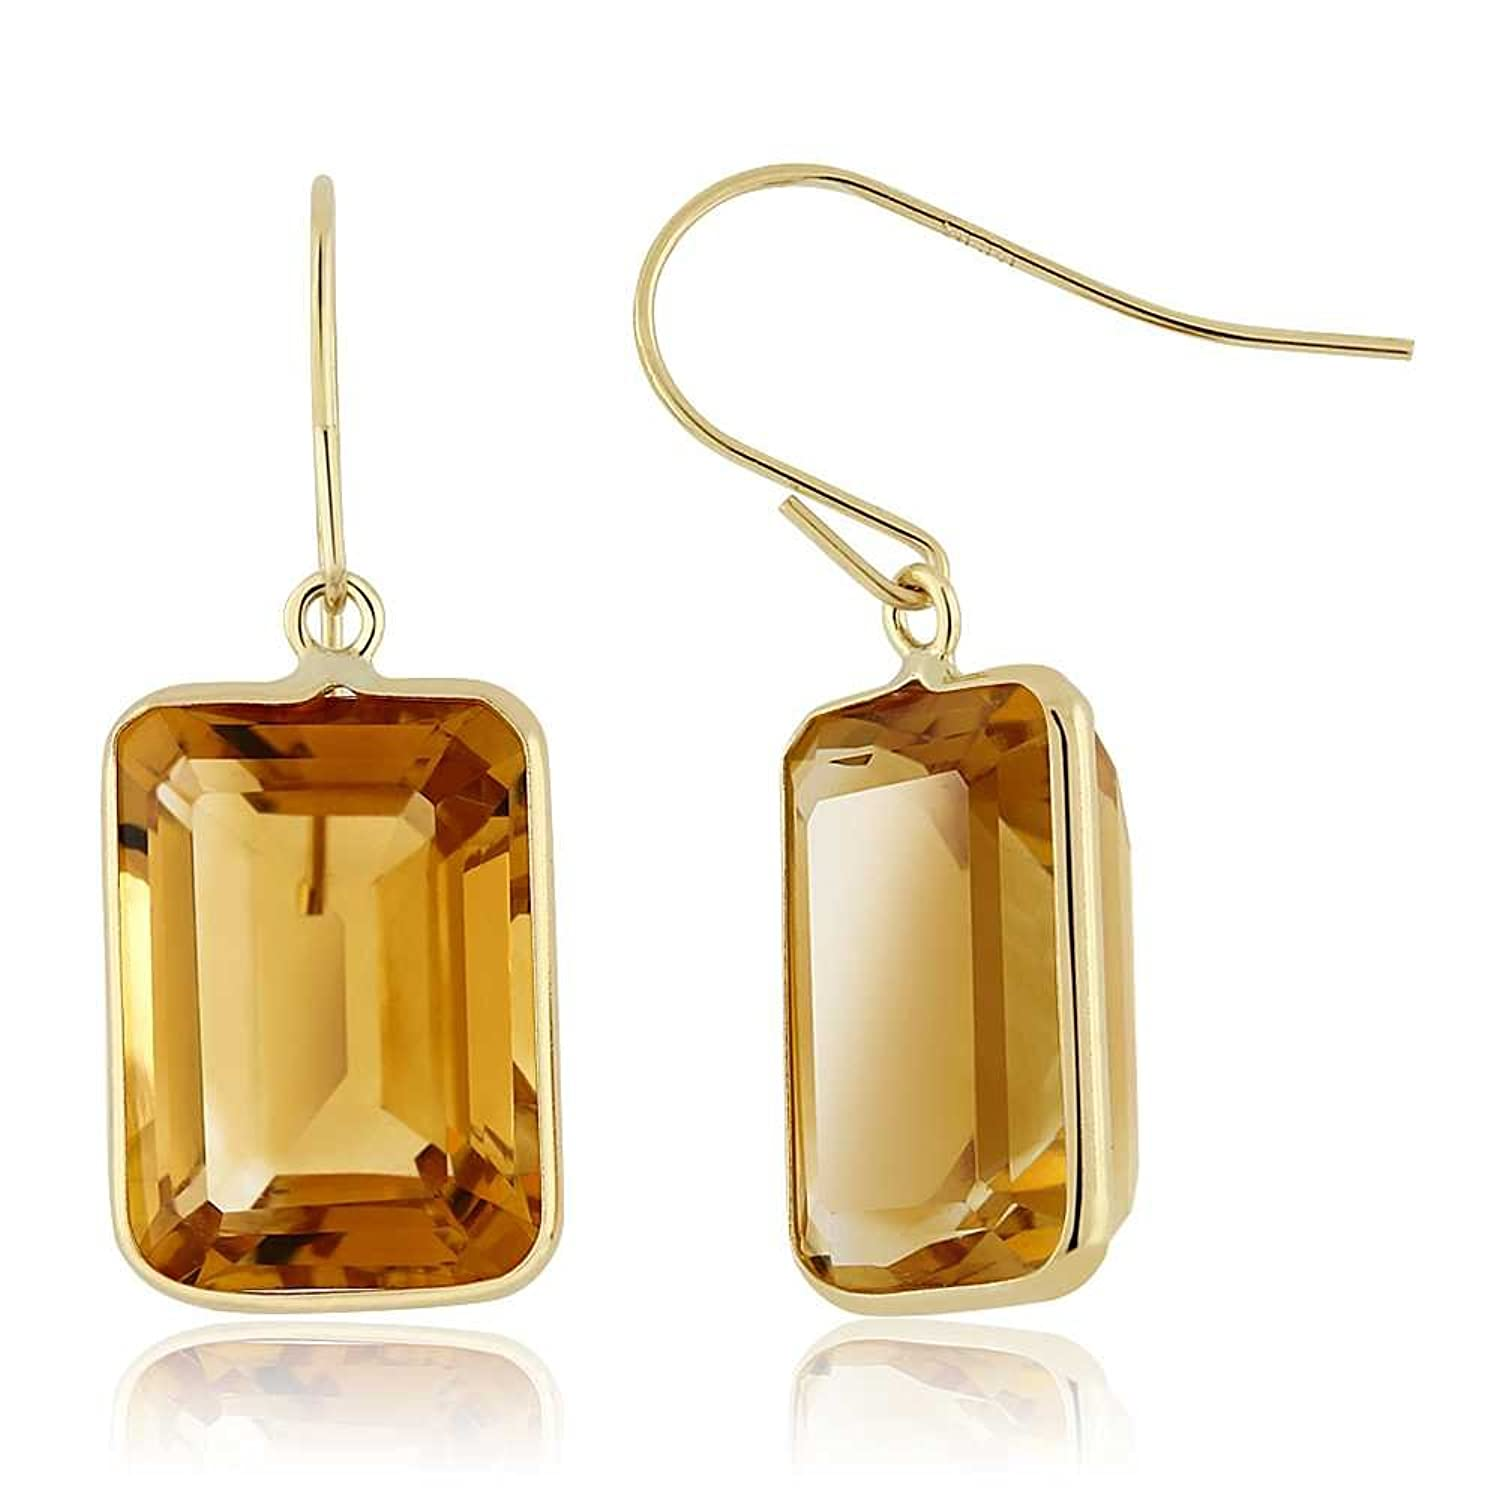 14.00 Ct Natural Citrine Emerald Cut Solid 14K Yellow Gold Women's Earrings